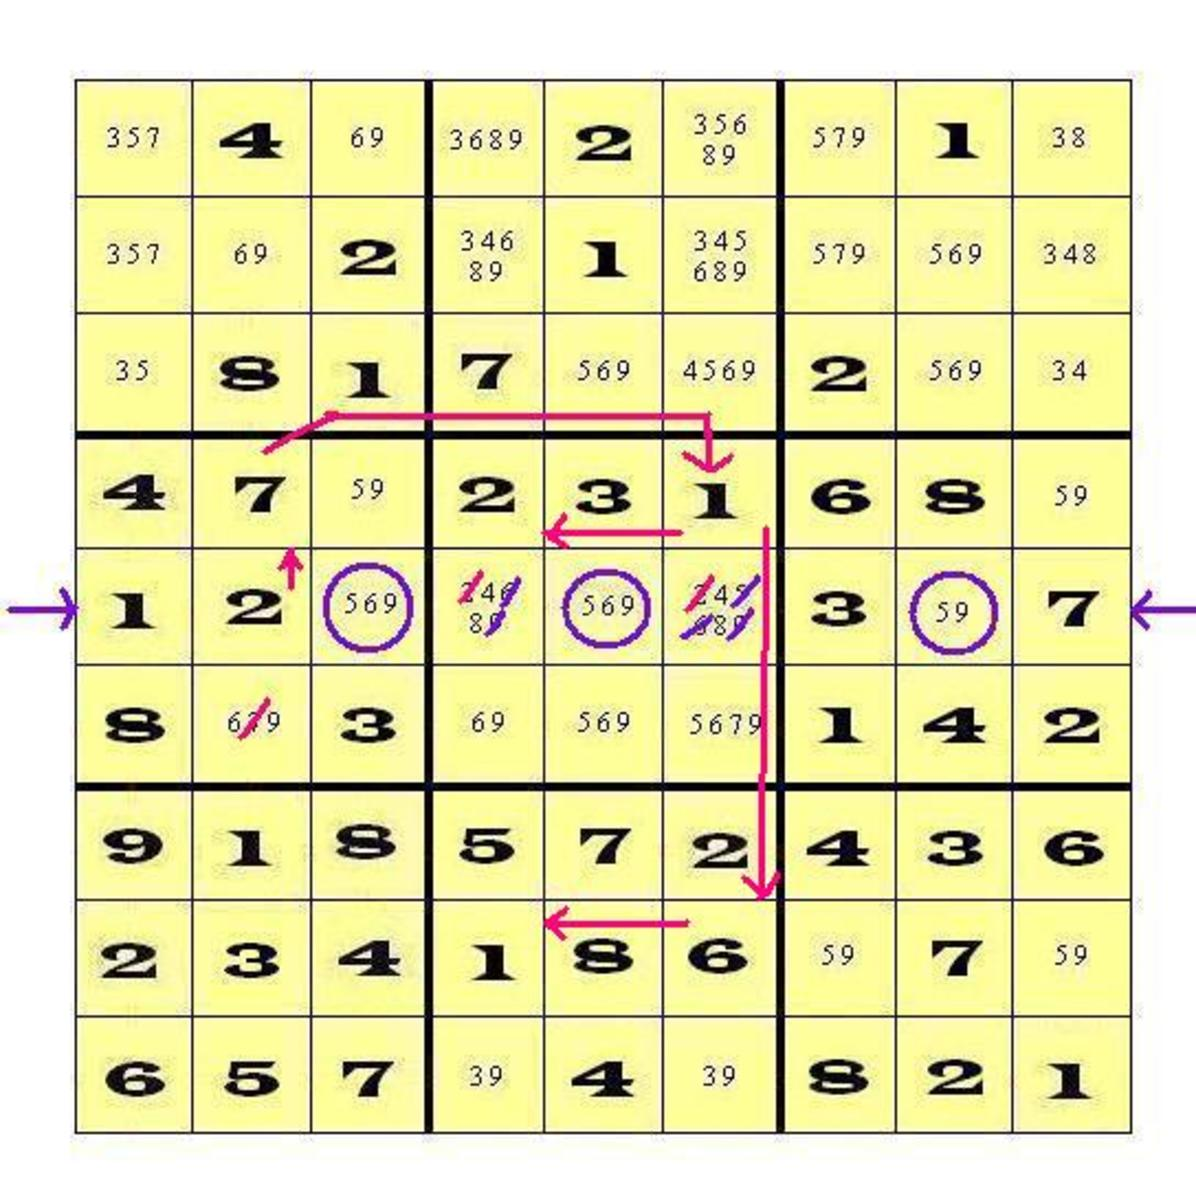 When you enter the 2 as the correct digit in cell 52, you begin a chain of consequences.  Notice all the digits that can be placed as a result of finding that triplet!